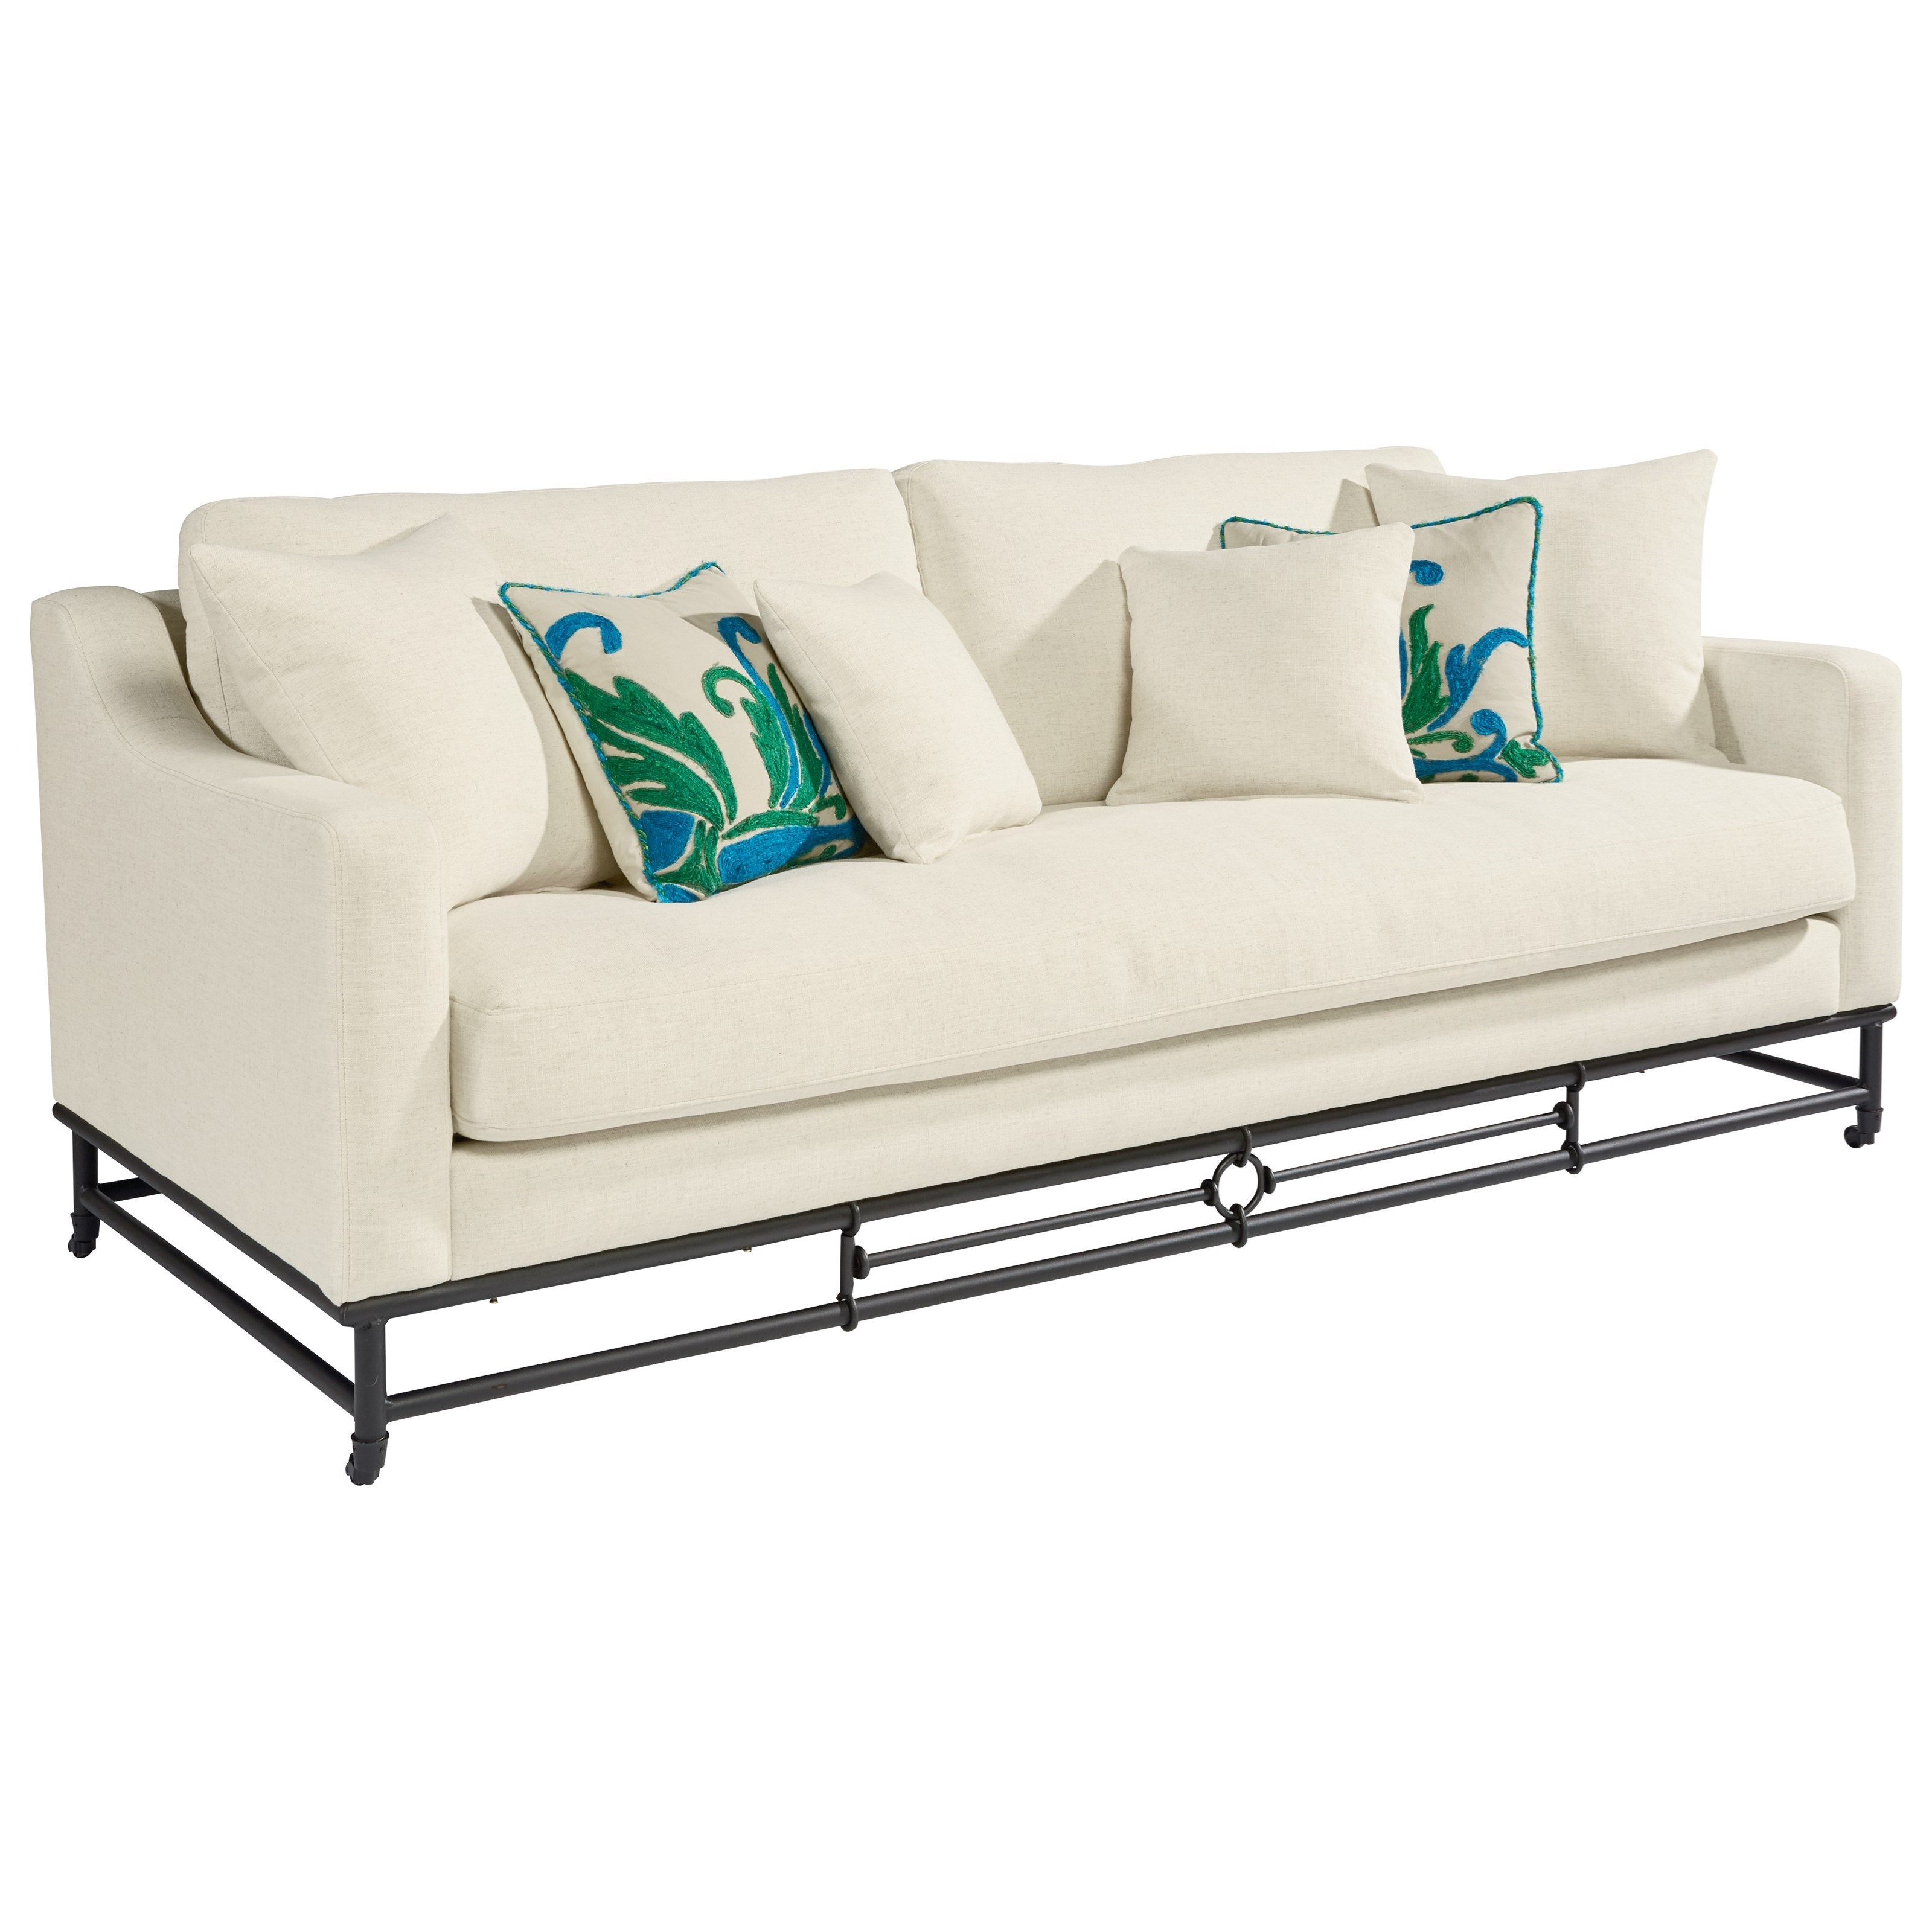 Clearwater Mattress Stores Magnolia Home by Joanna Gaines Ironworks Sofa - Hudson's Furniture ...